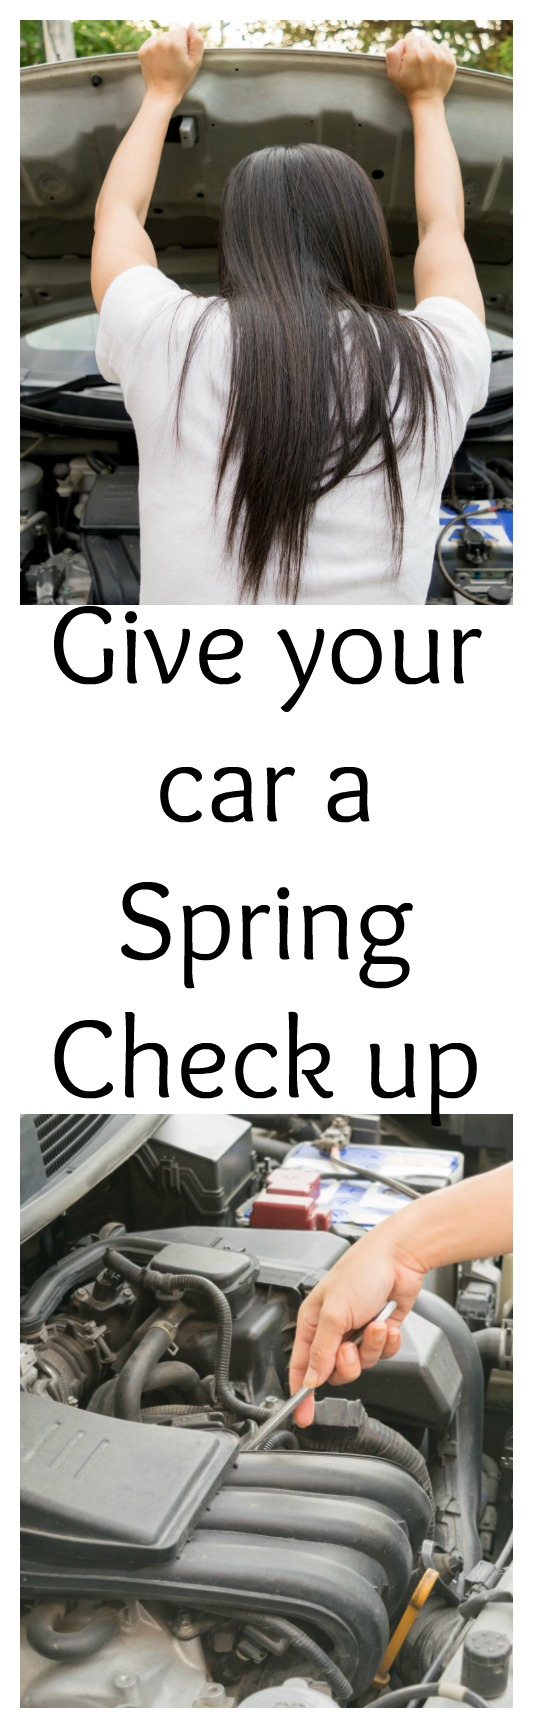 The snow has melted and the flowers are coming out. It is time to give your car a Spring check up, so that you are not stranded on the side of the road.